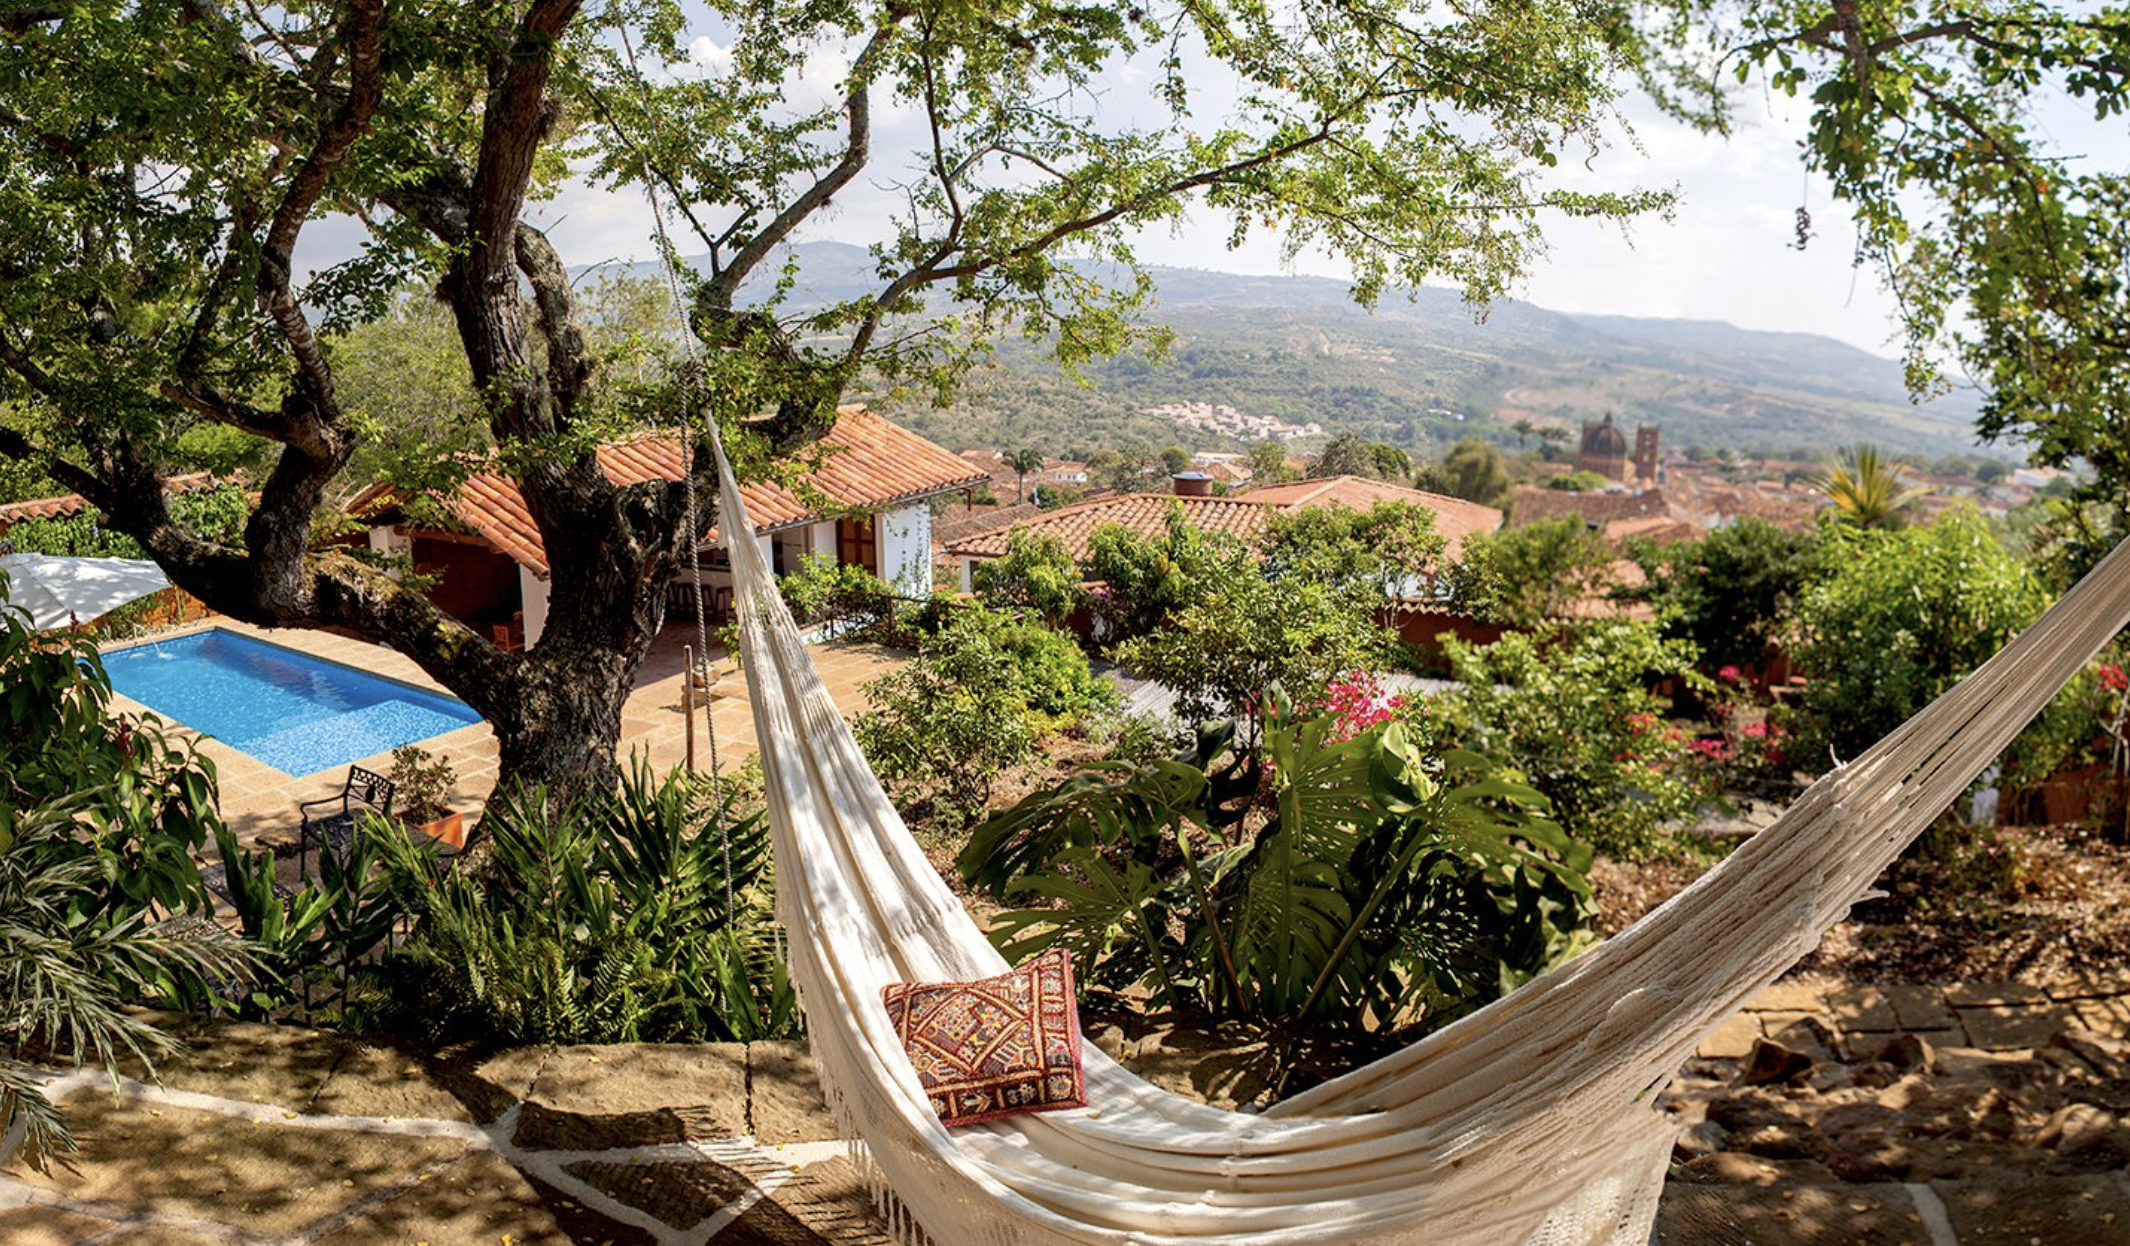 Colombia wants sustainable touristm